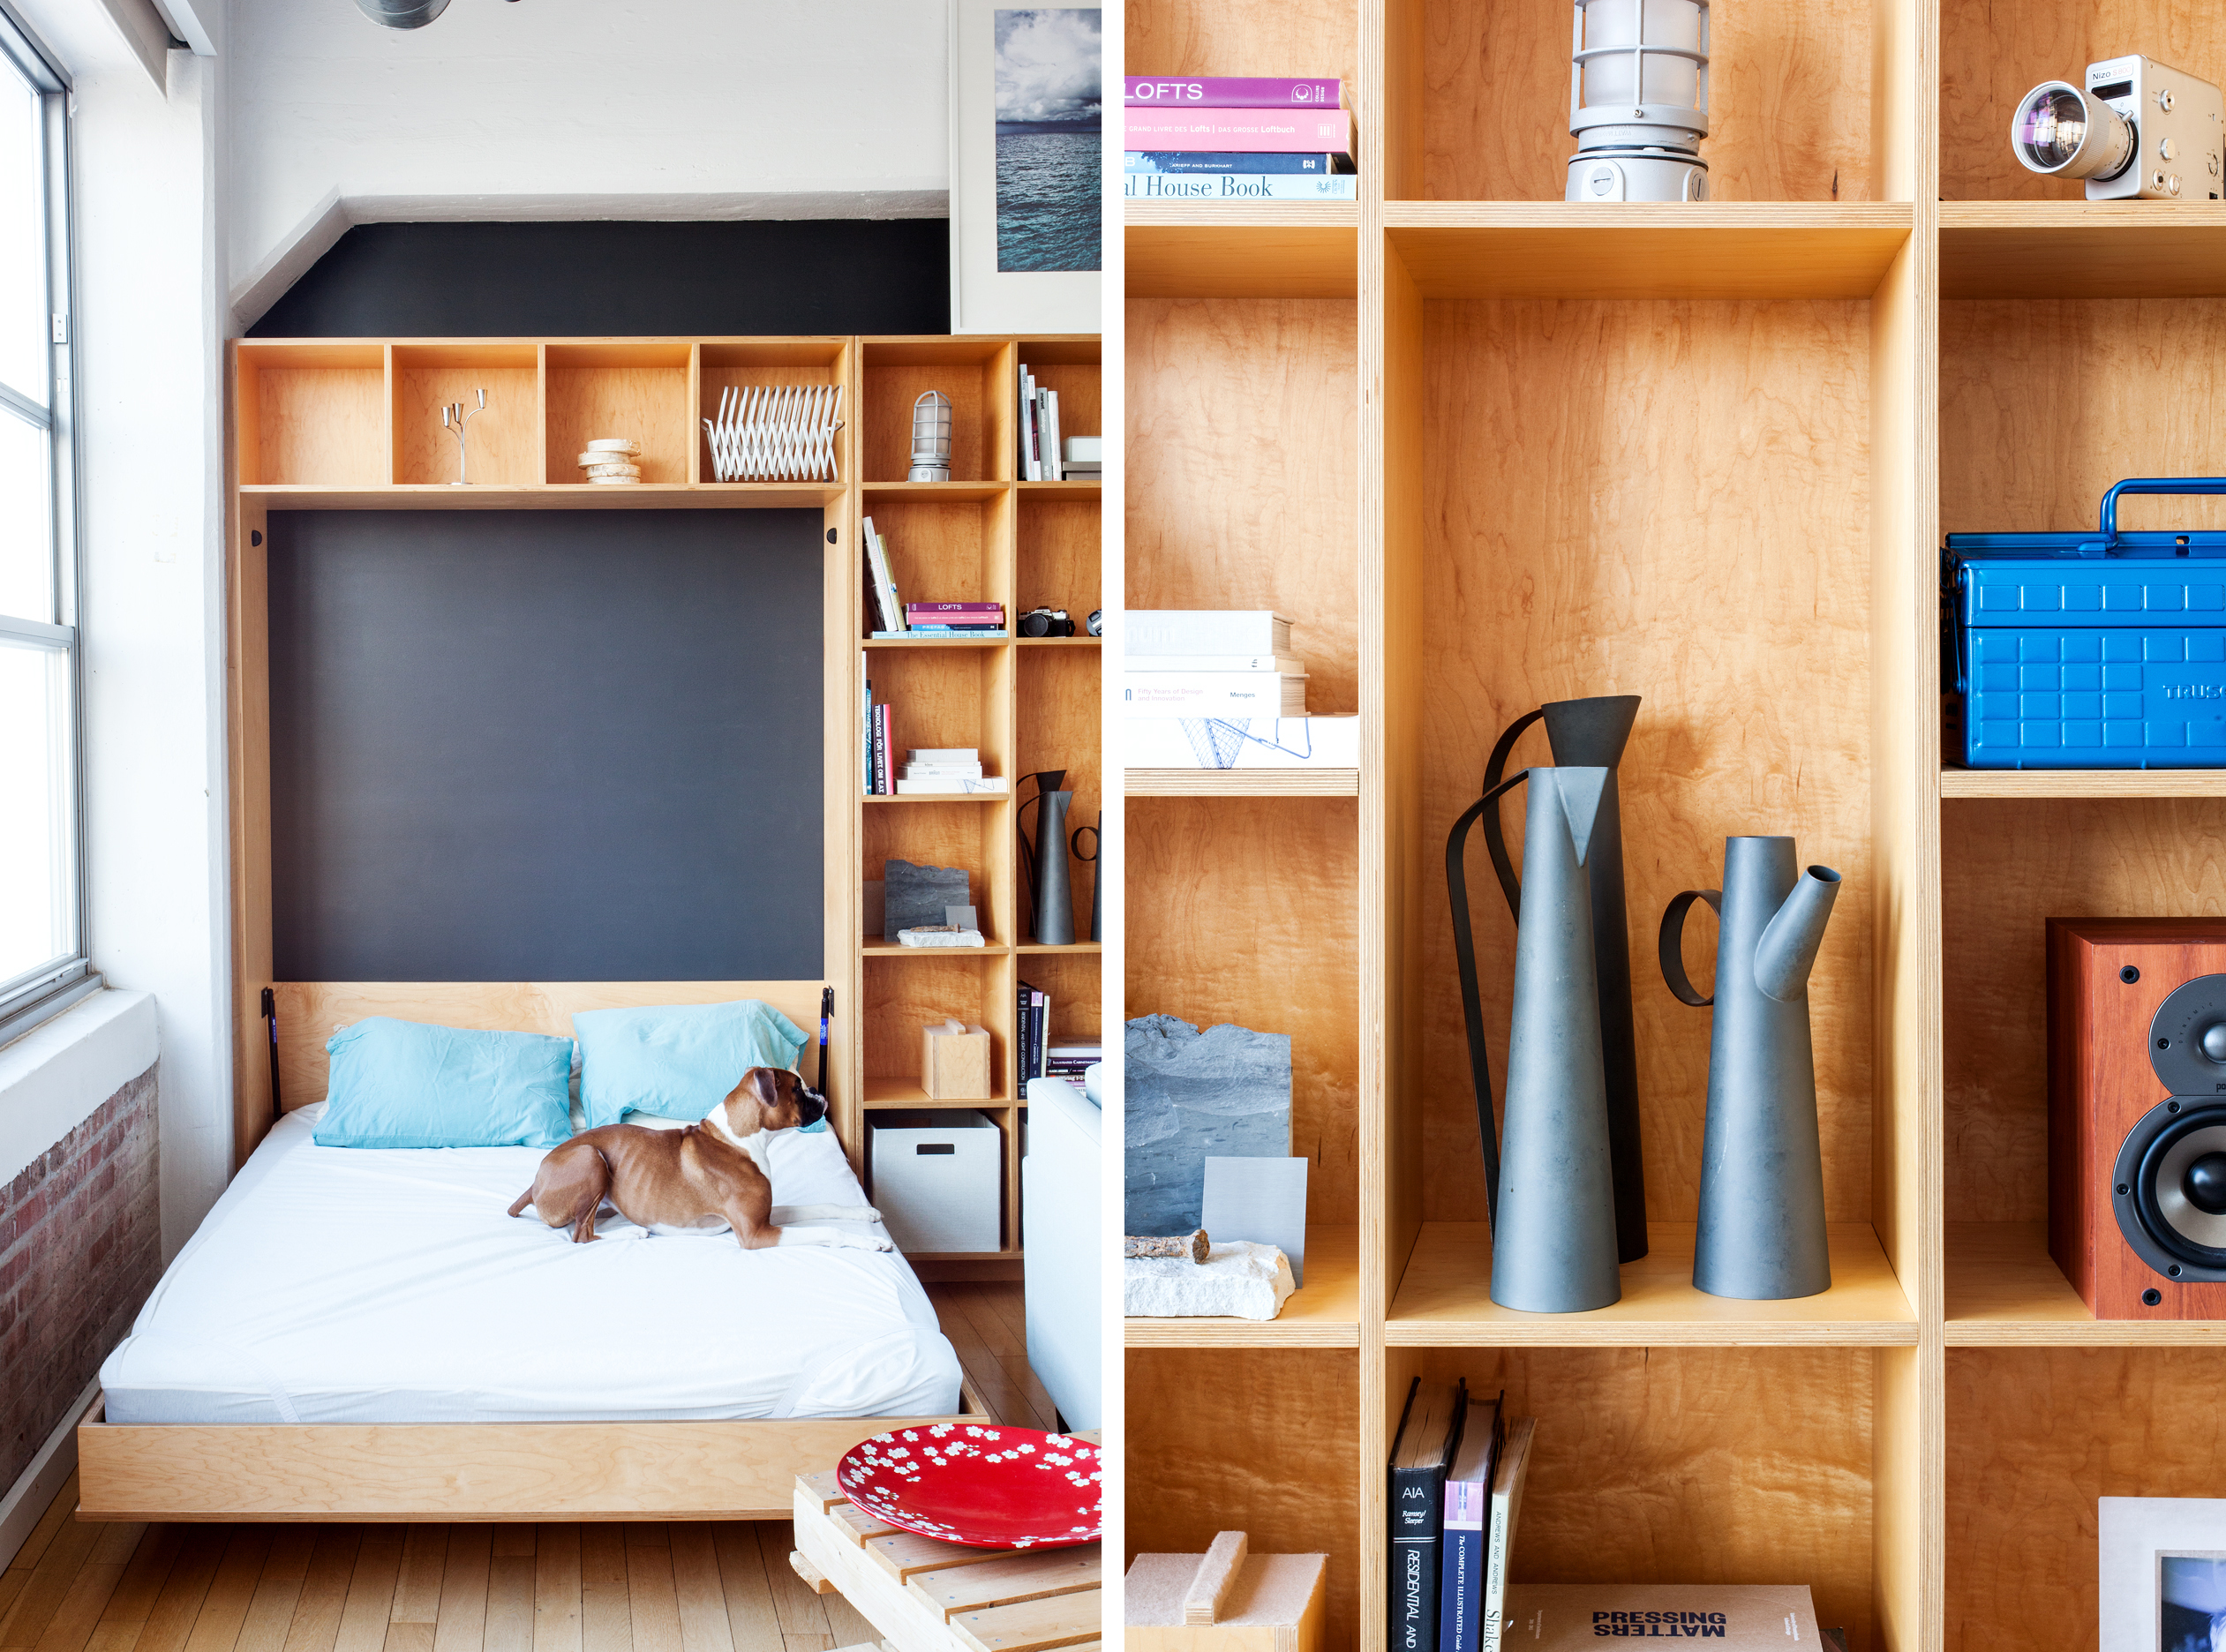 6 tips for maximizing small-space storage